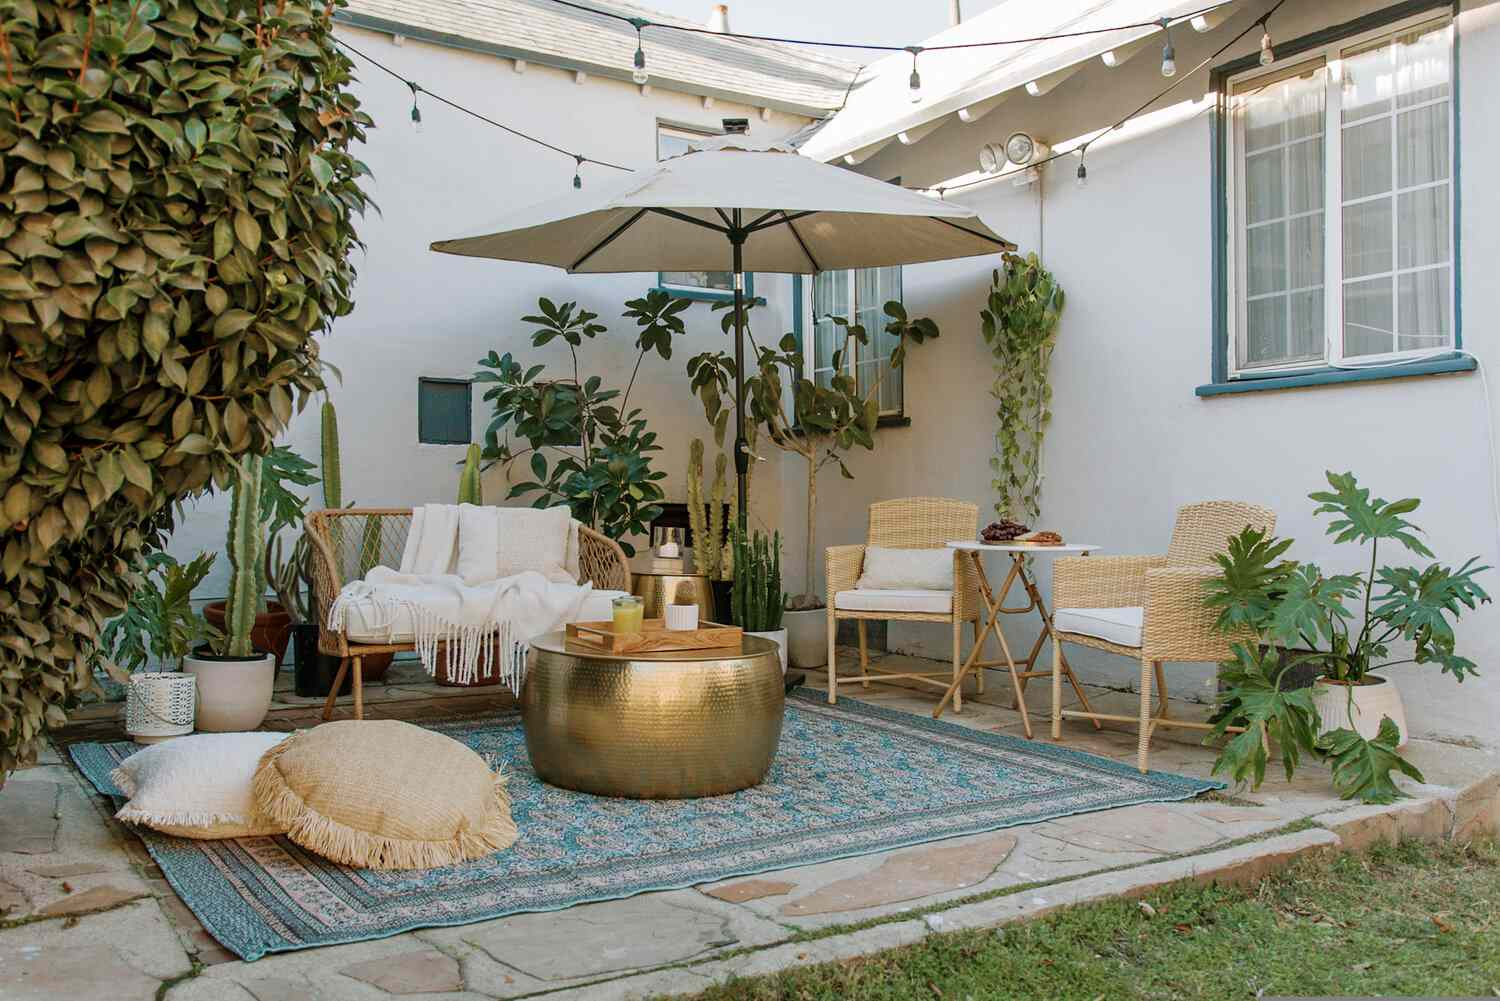 An outdoor deck decorated like a bohemian living room